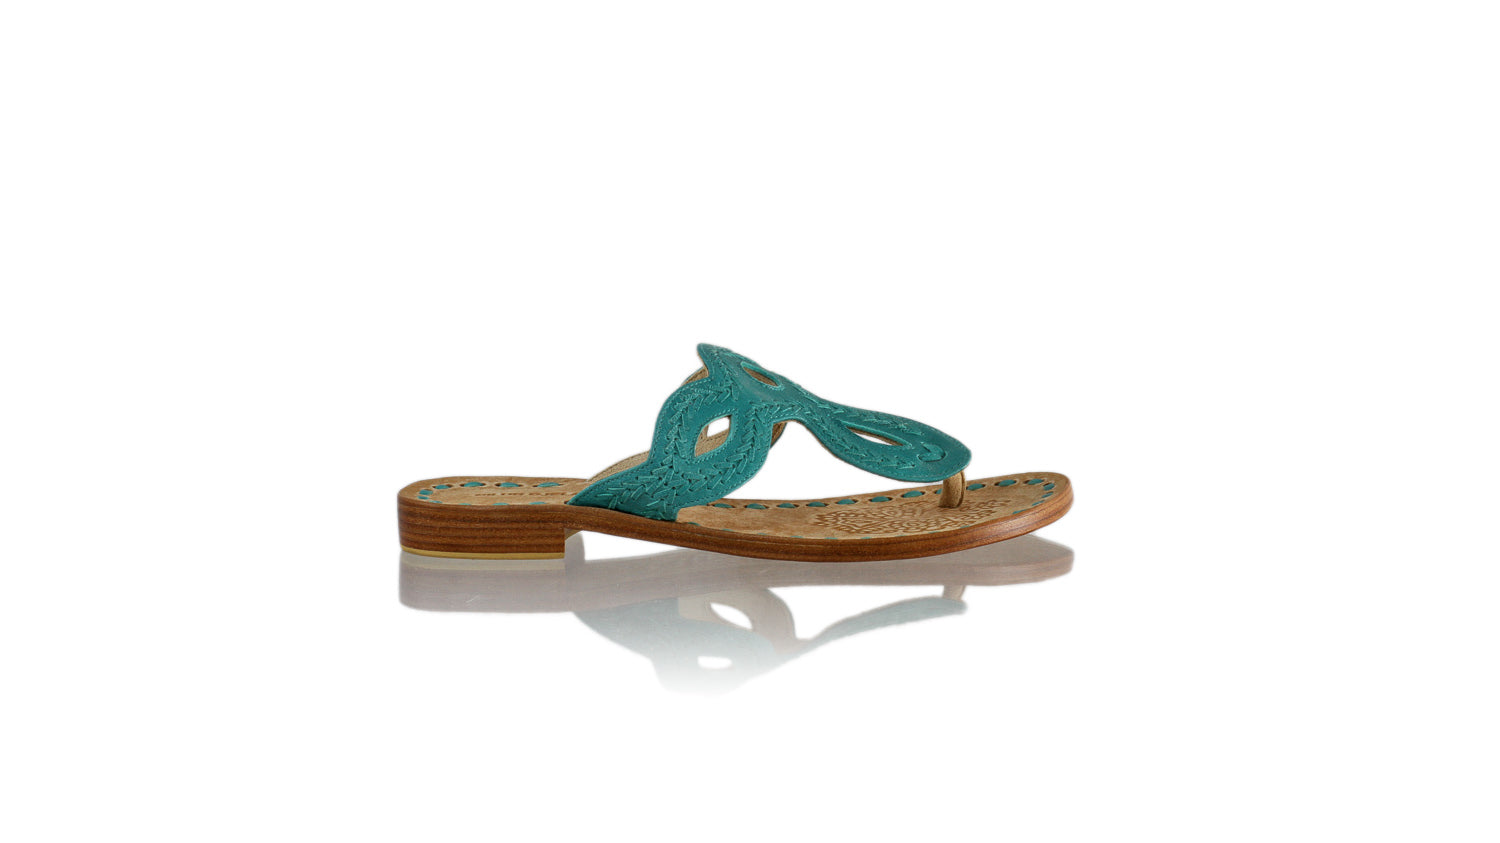 Leather-shoes-Africa 20mm Flat - All Dark Aqua-sandals flat-NILUH DJELANTIK-NILUH DJELANTIK